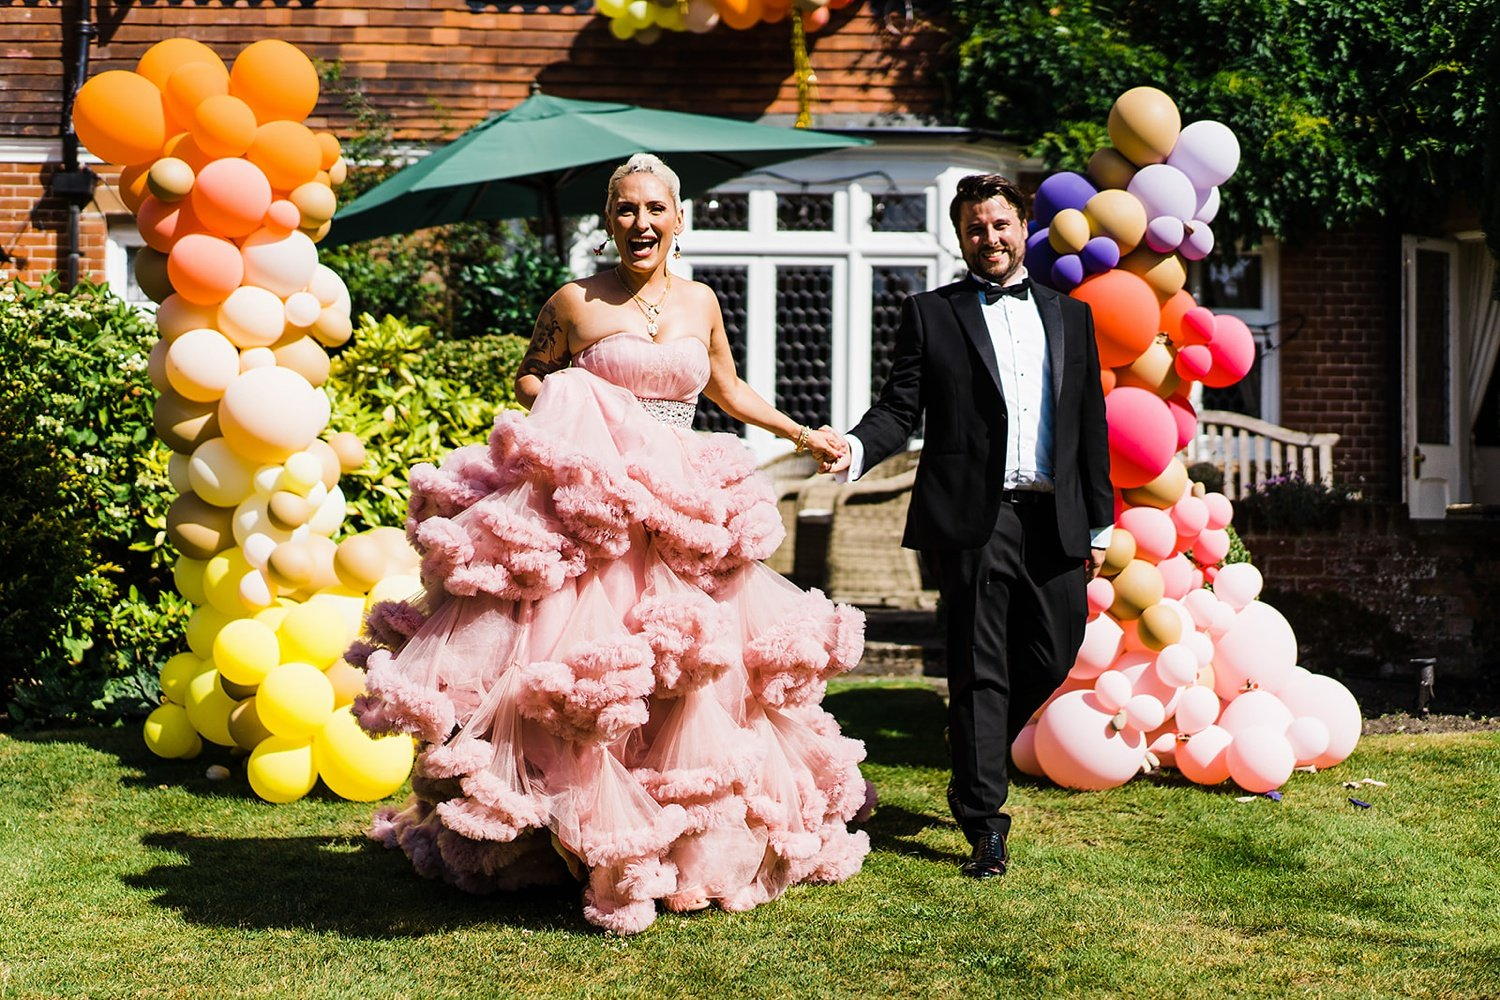 Back garden festival wedding pink wedding dress